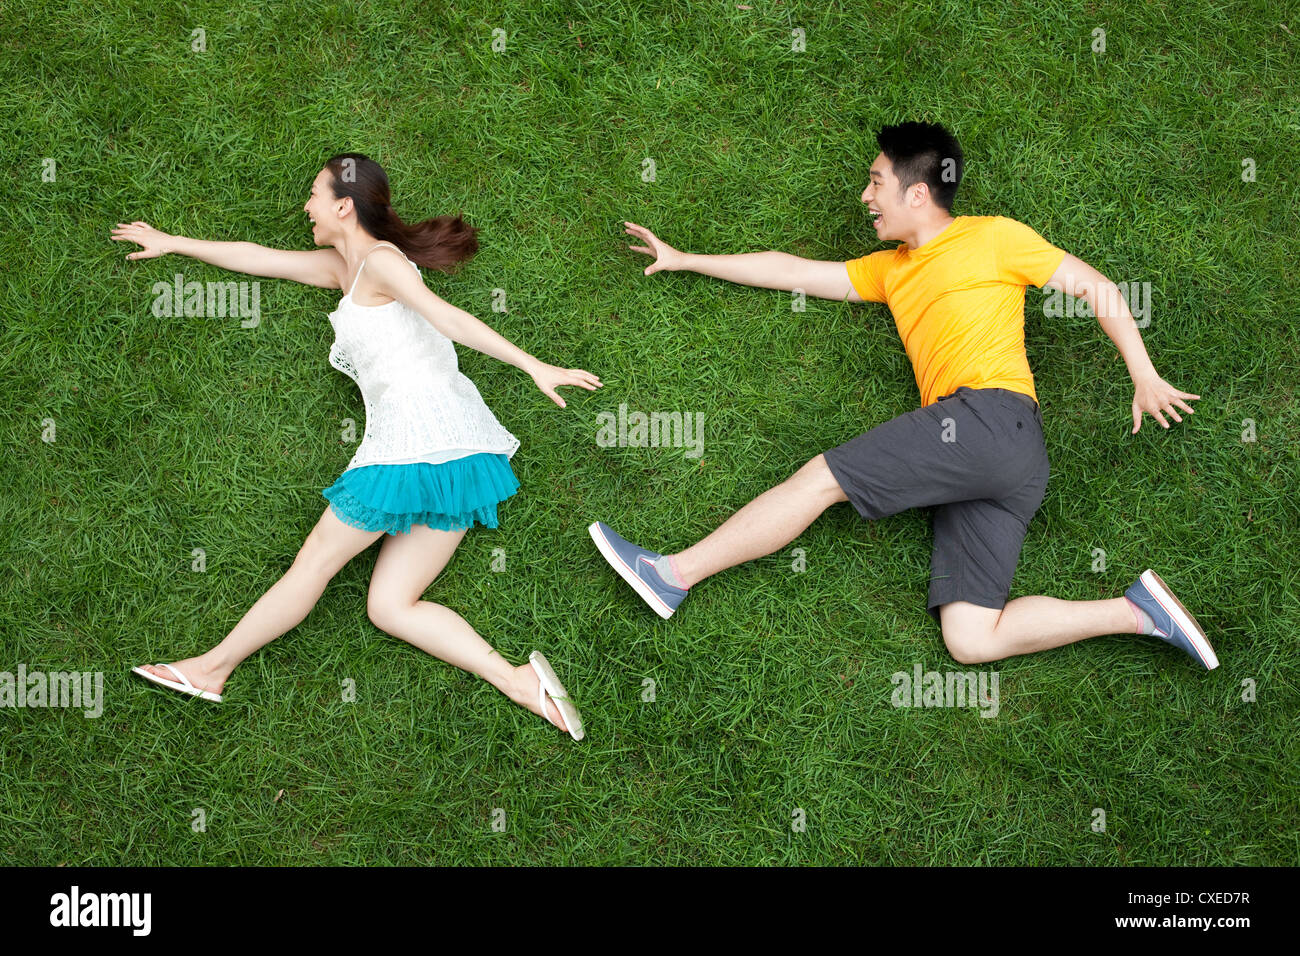 Young couple playing chase game on grass - Stock Image